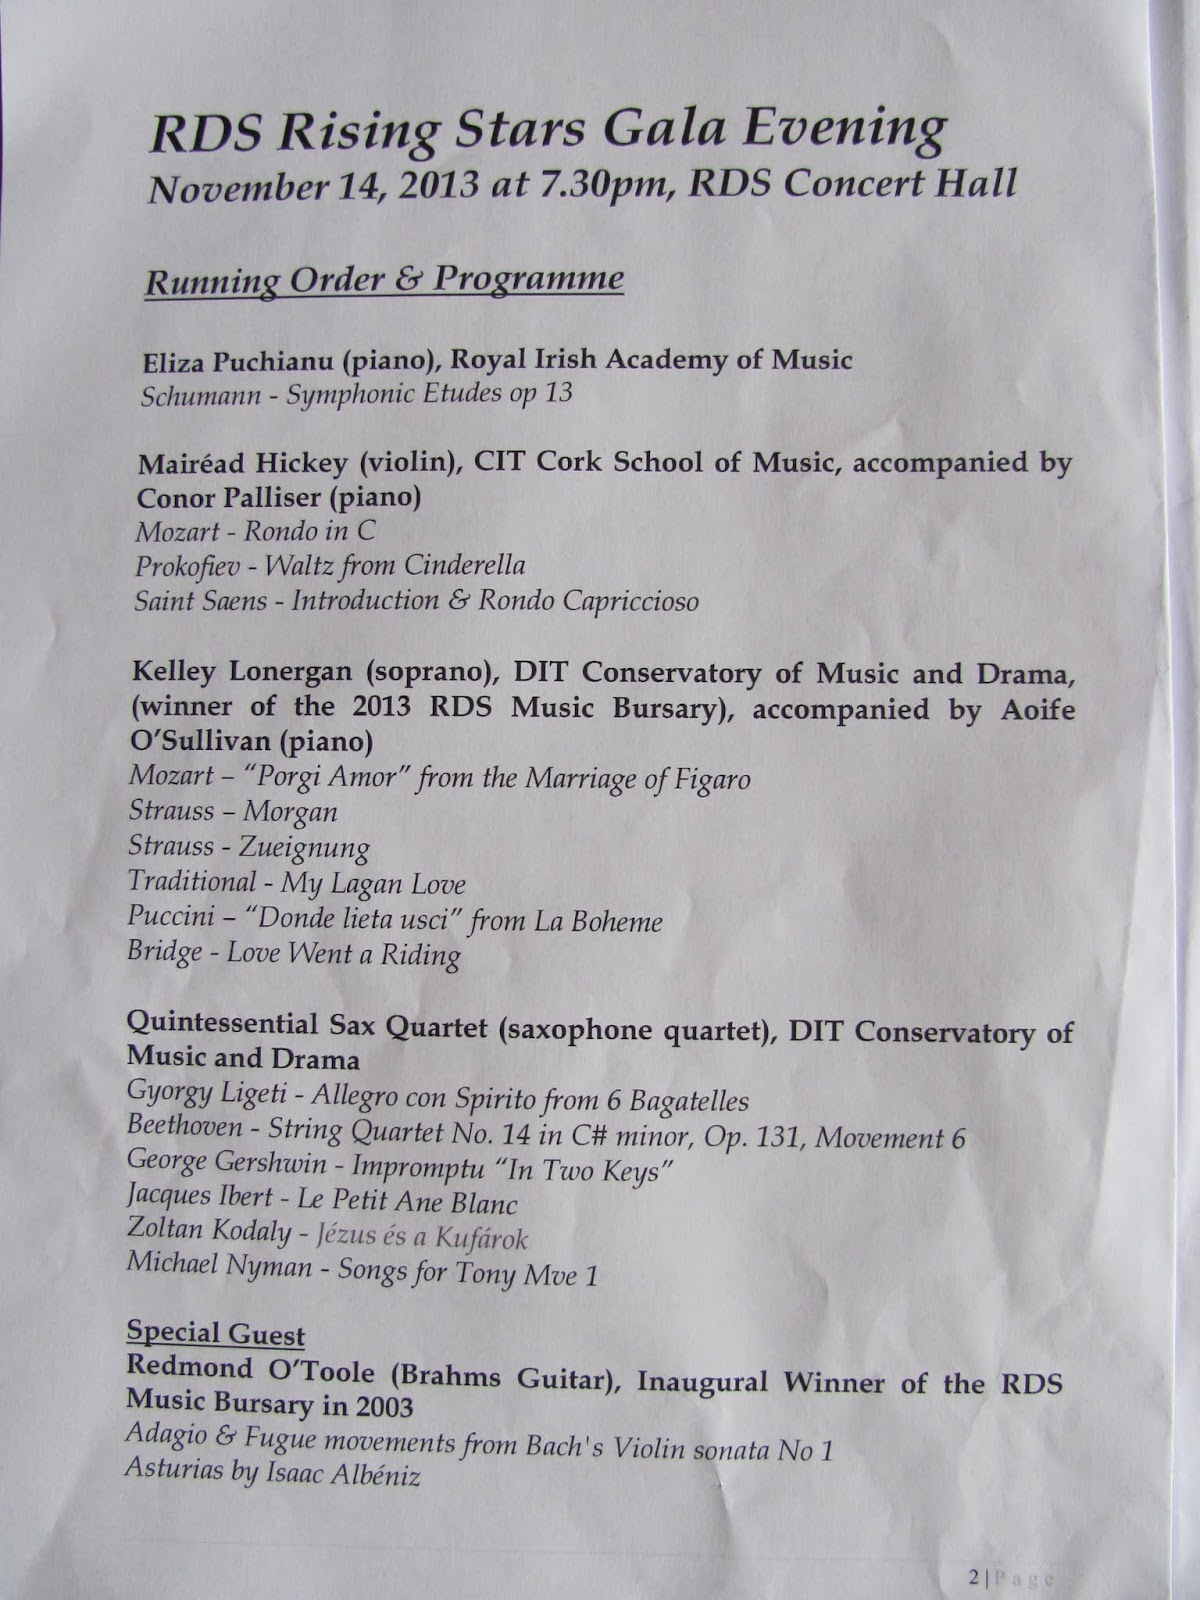 The Program(me) for RDS Rising Stars Gala Evening November 2013